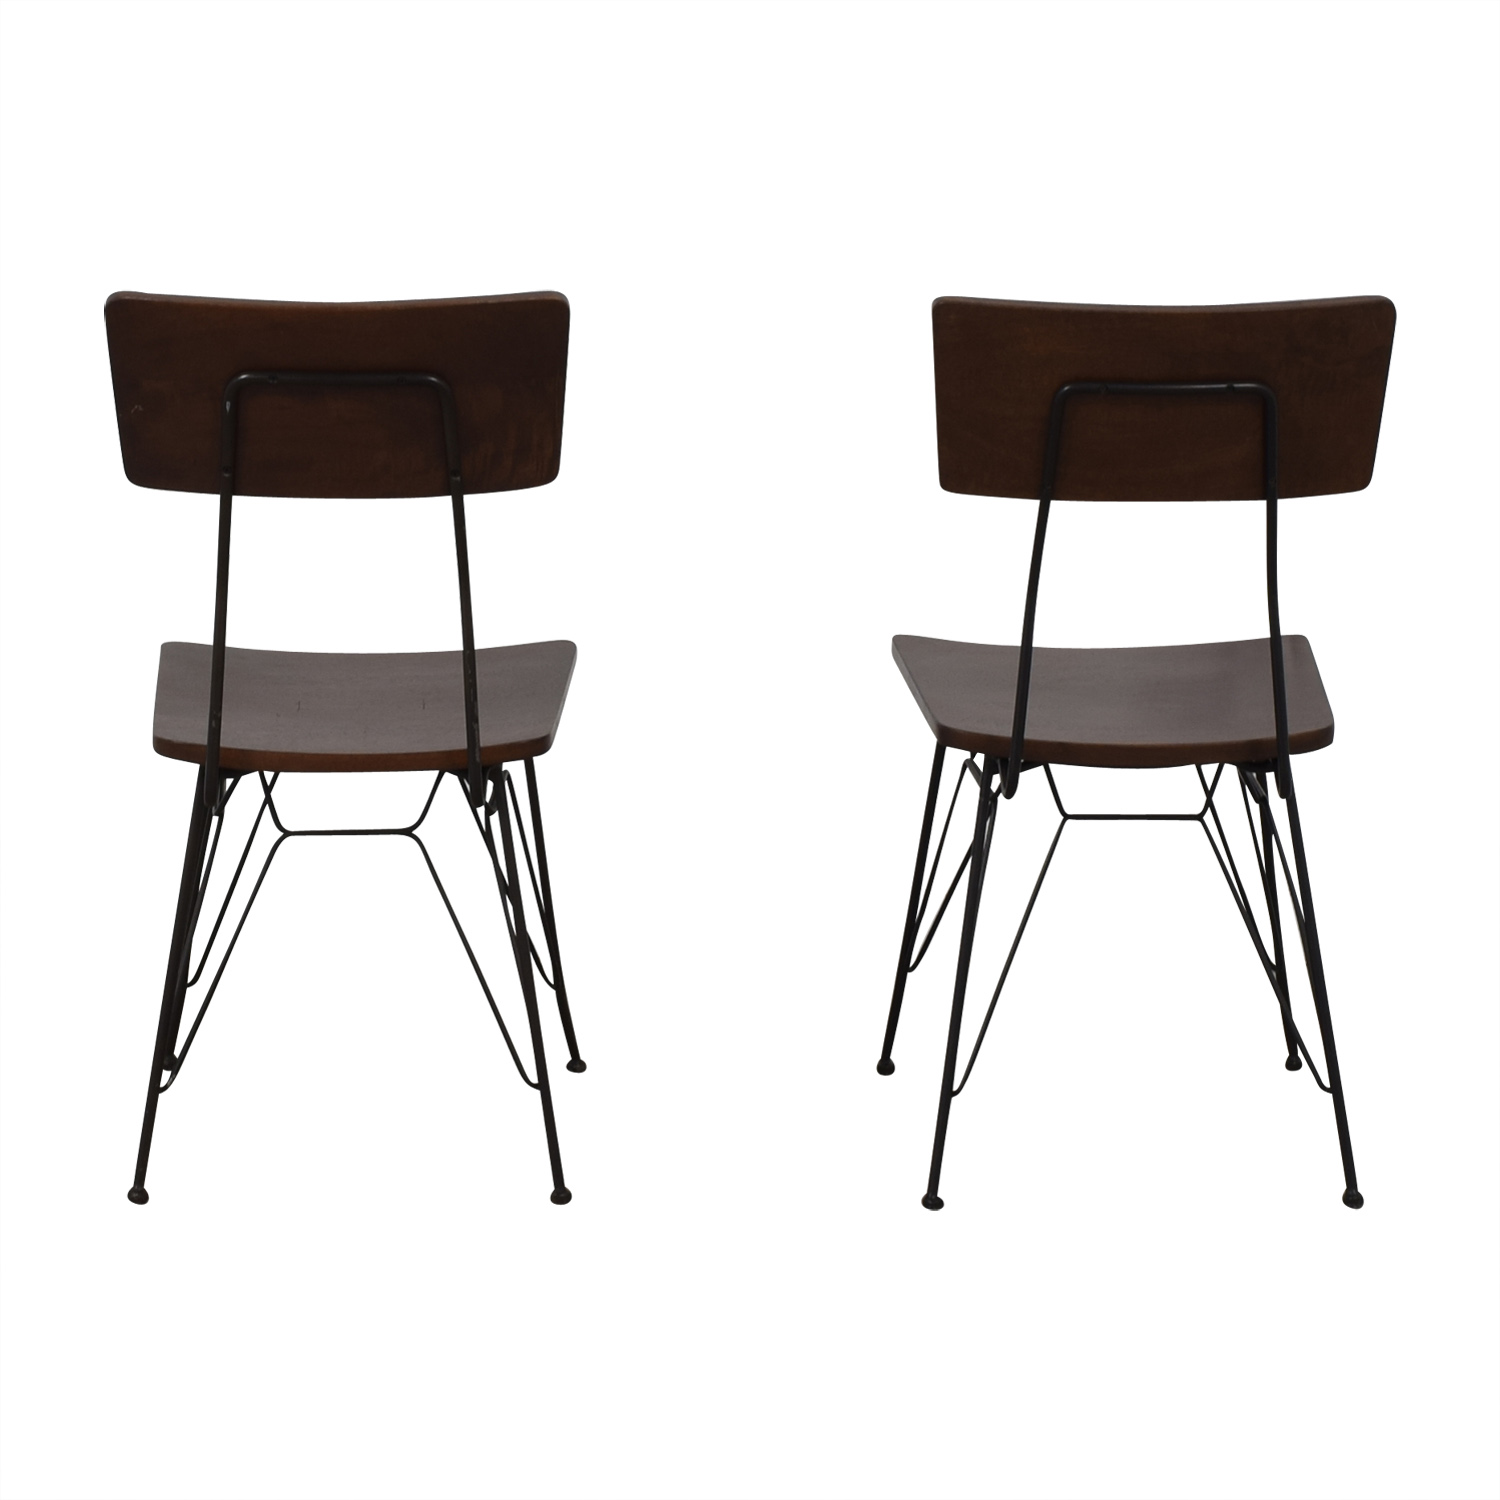 Crate & Barrel Crate & Barrel Elston Dining Chairs dimensions